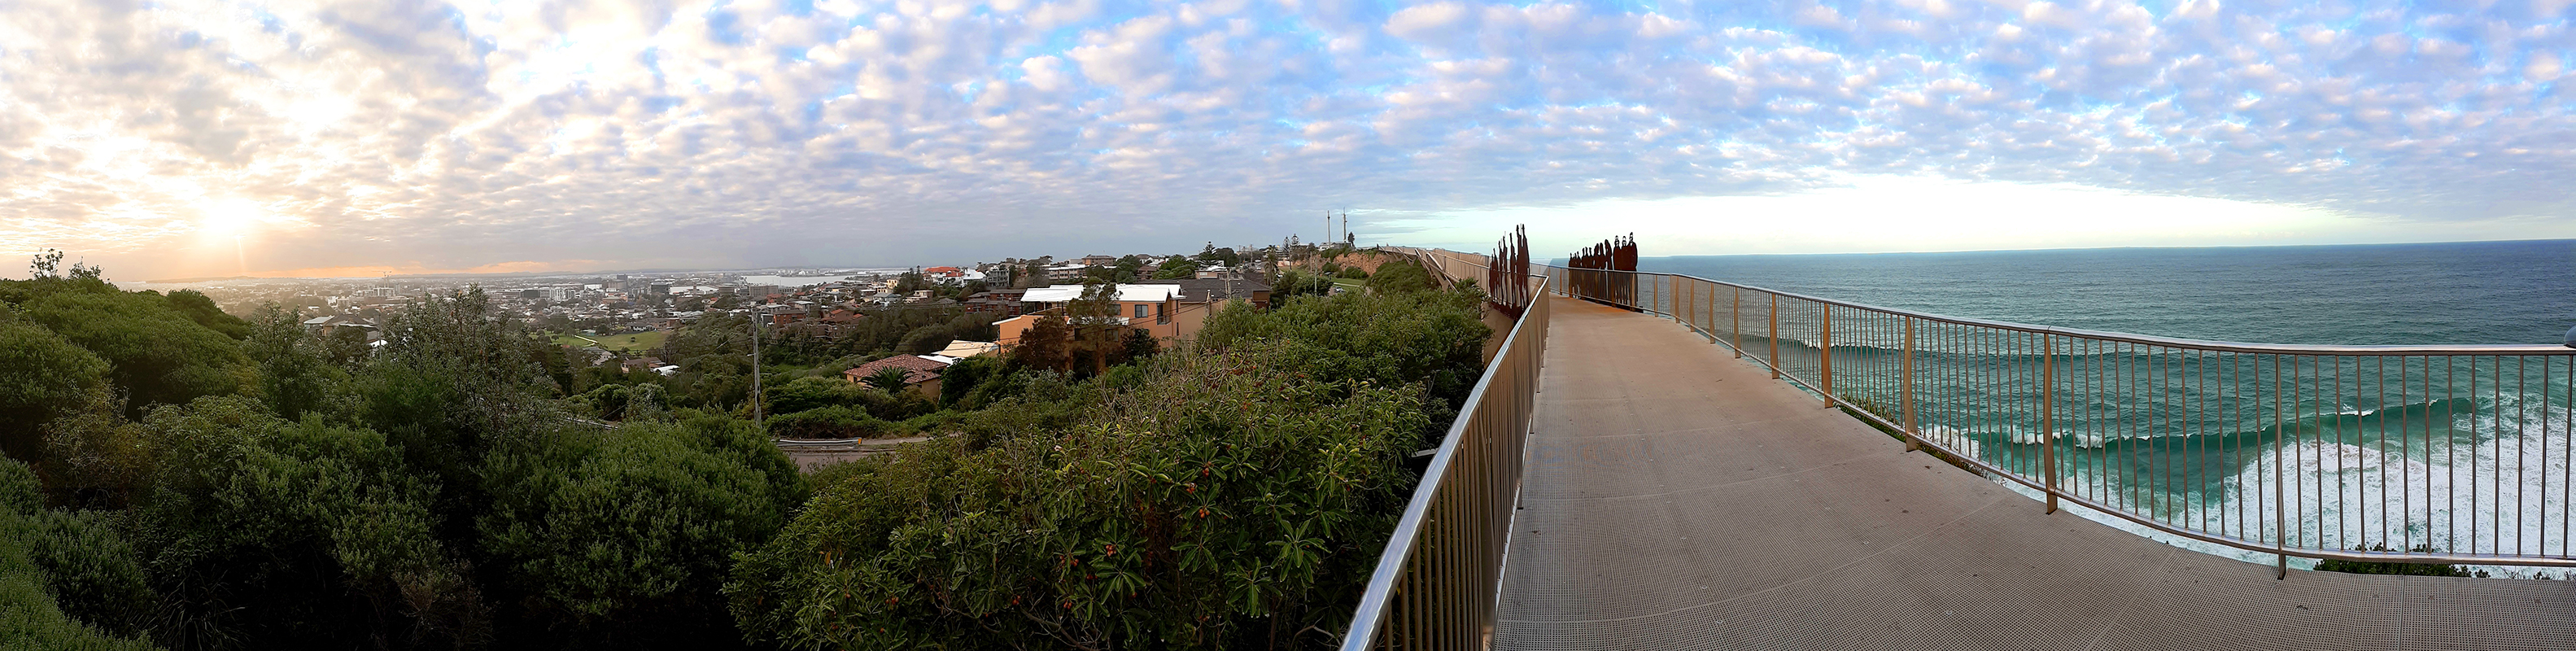 photograph of the anzac walk and bridge in newcastle and the view over the pacific ocean and city